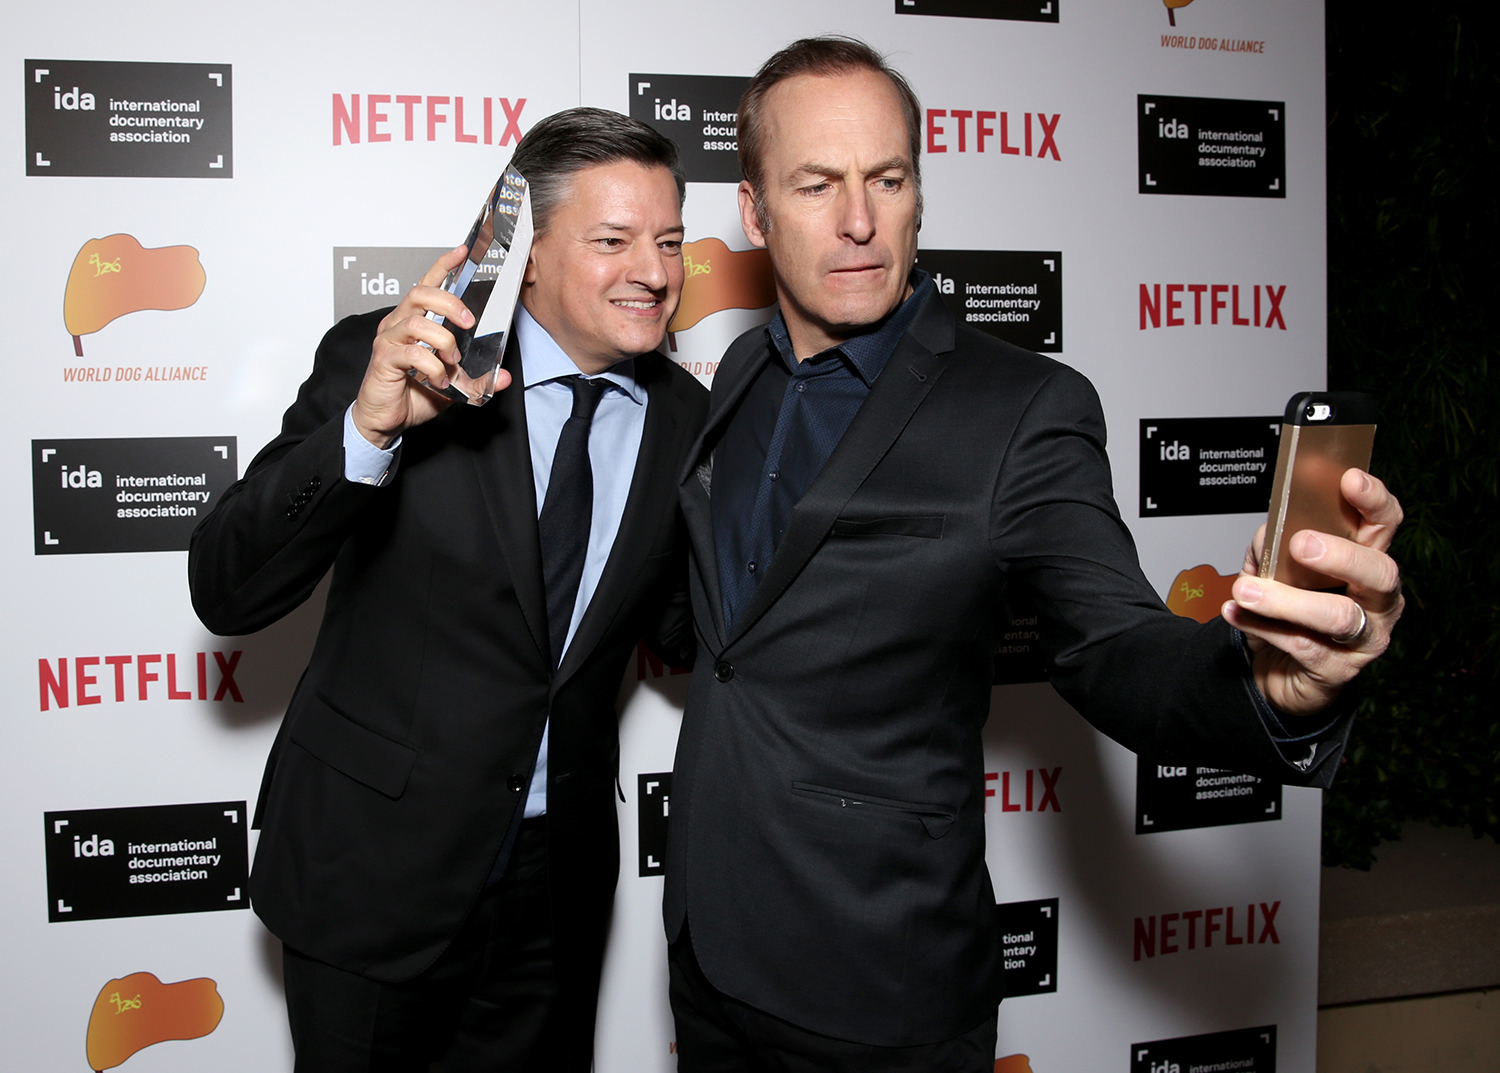 Netflix's Ted Sarandos poses with the Pioneer Award backstage with actor Bob Odenkirk